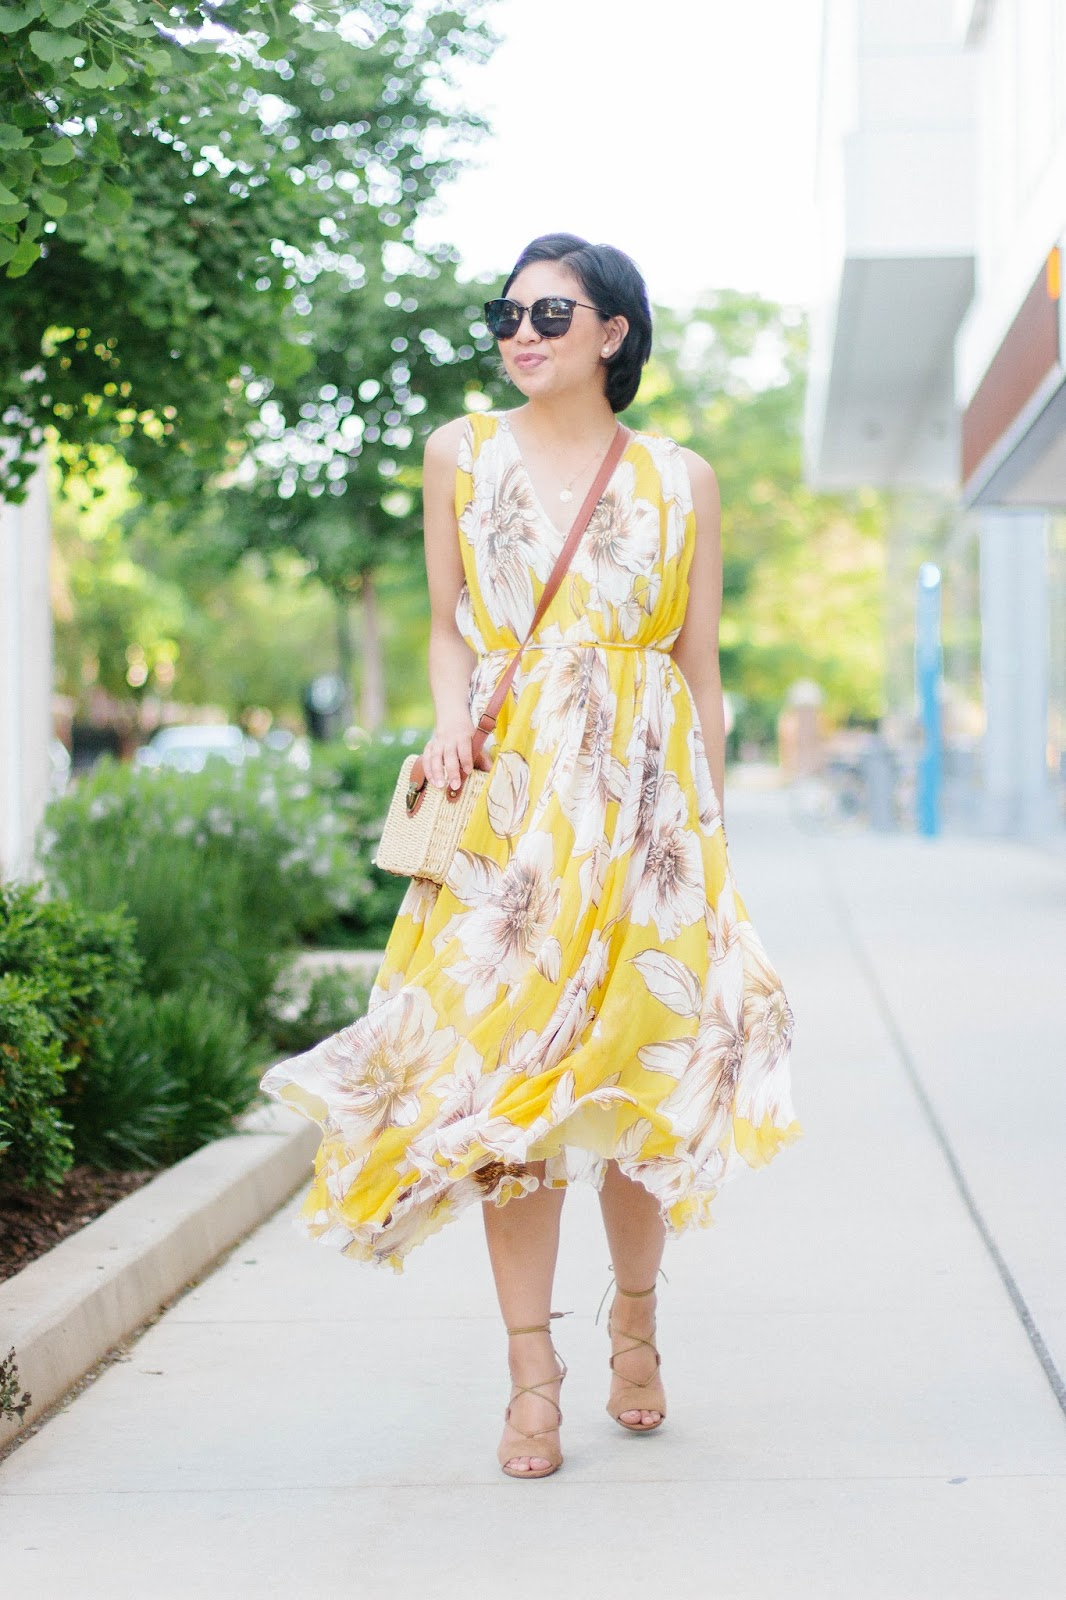 The Only Dress You Need for the Summer